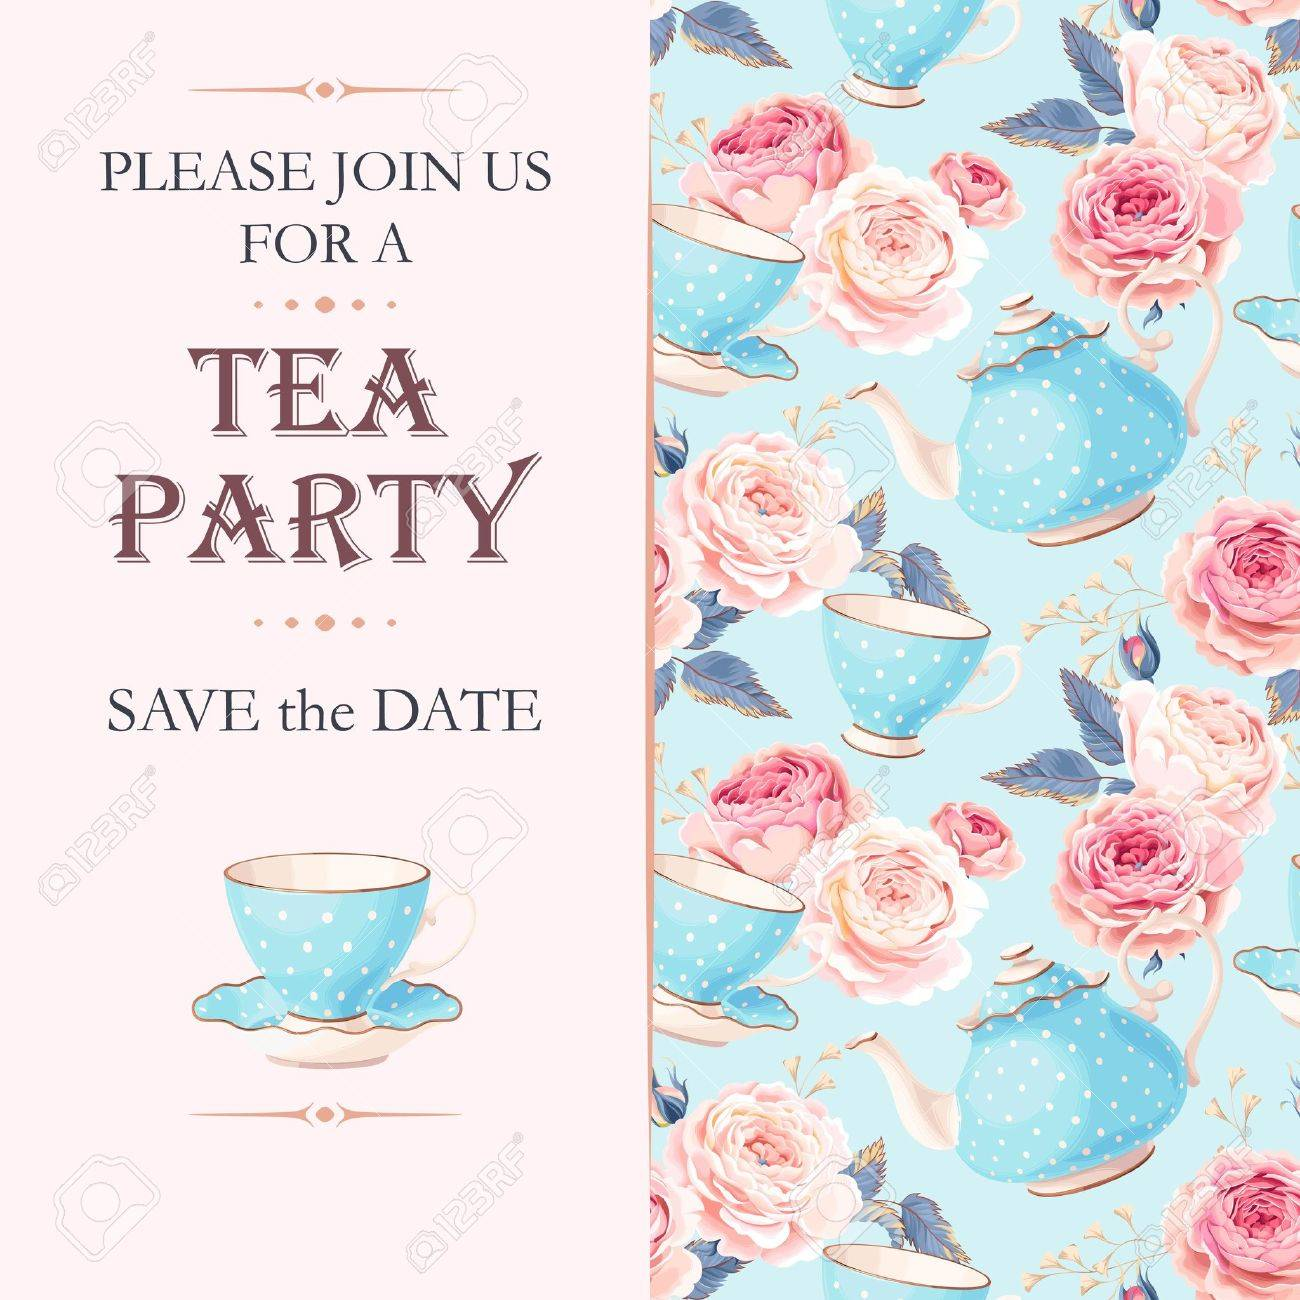 Vector Tea Party Invitation With Cups And Flowers Royalty Free